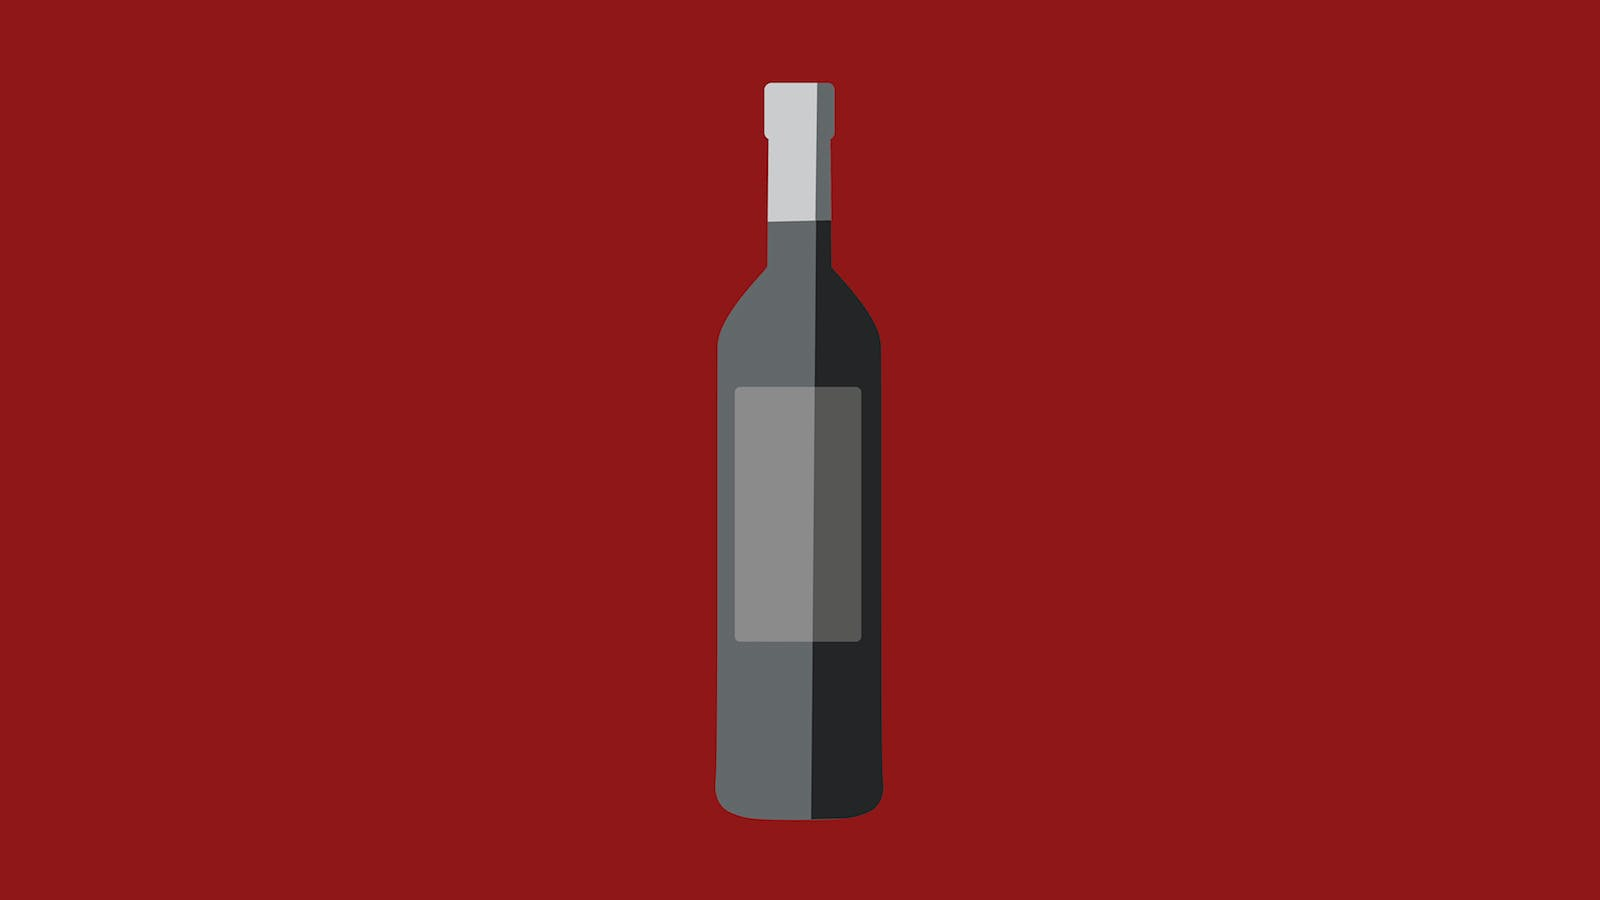 Why isn't there a nutrition label on wine bottles?